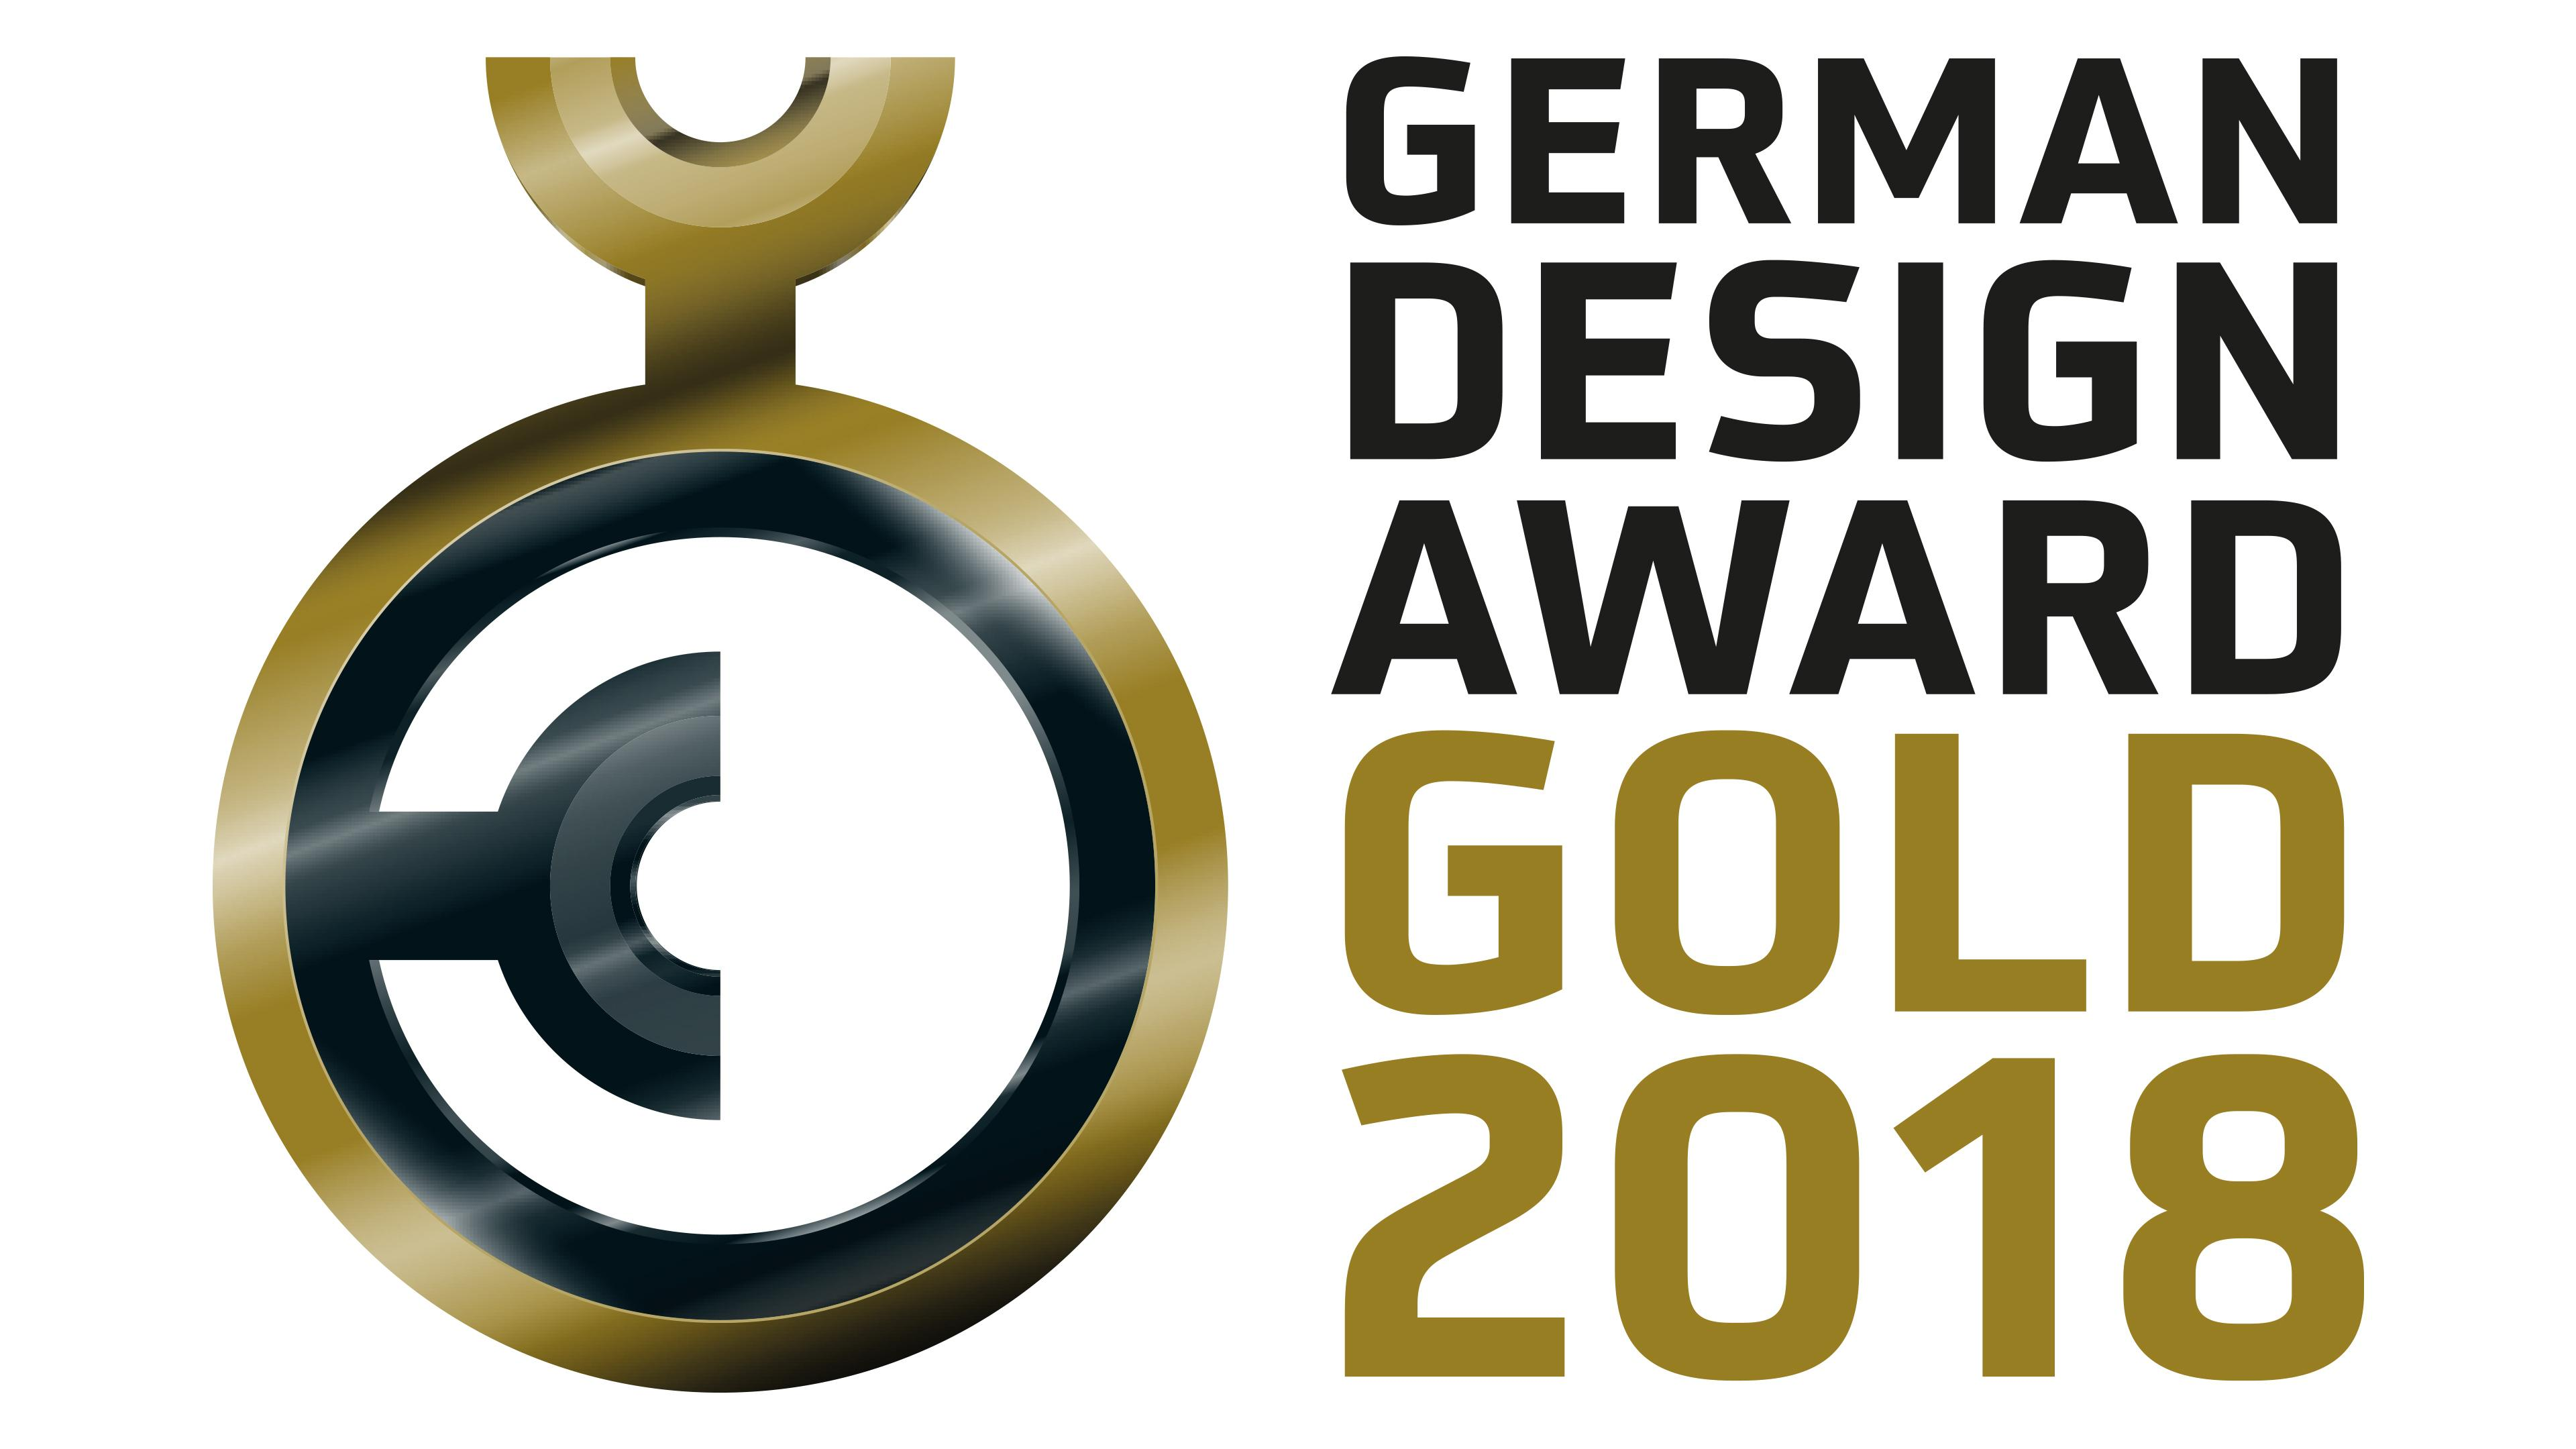 Award_German-Design-Award-2018.jpg